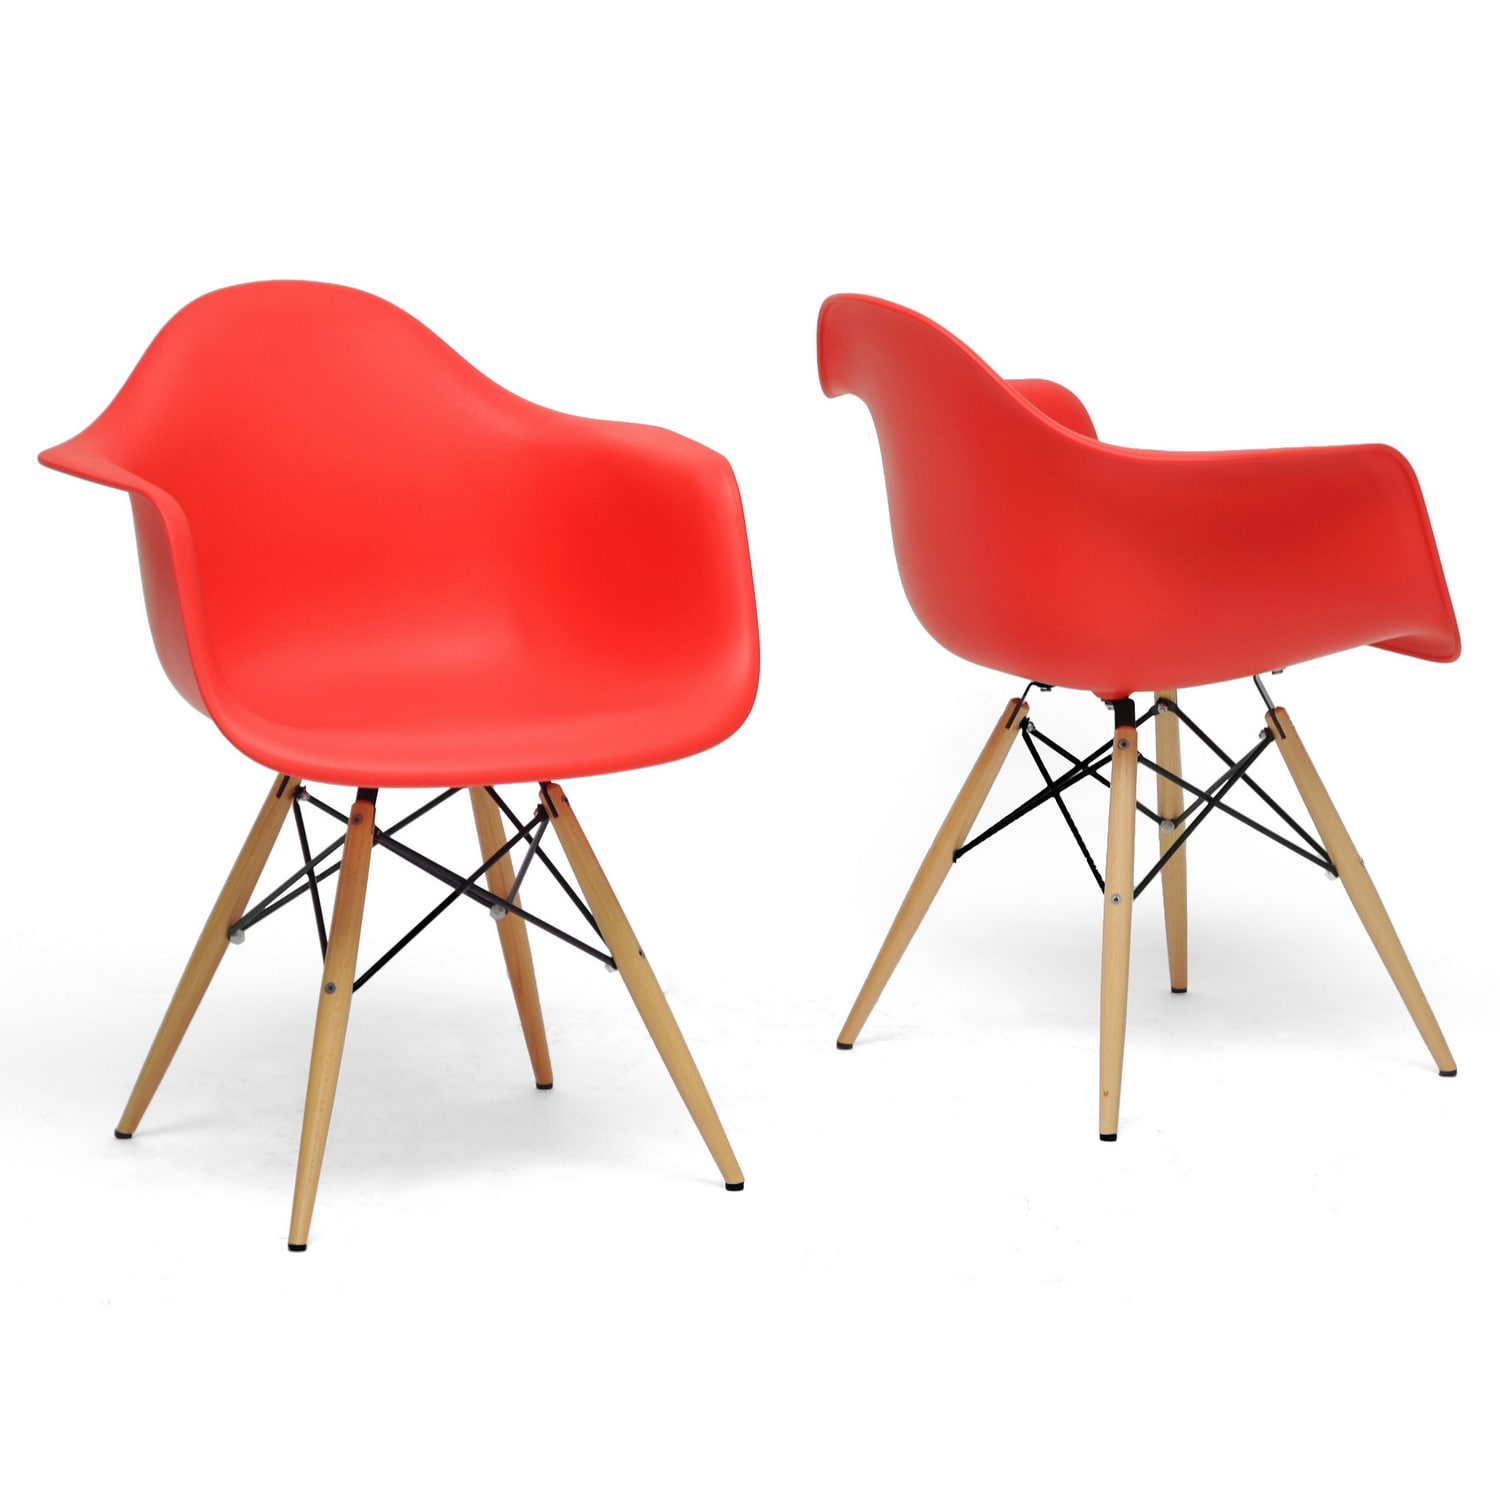 Amazing Photo Of Red Wooden Chair Best Living Room Chairs Back Pain Walmart M Picture With